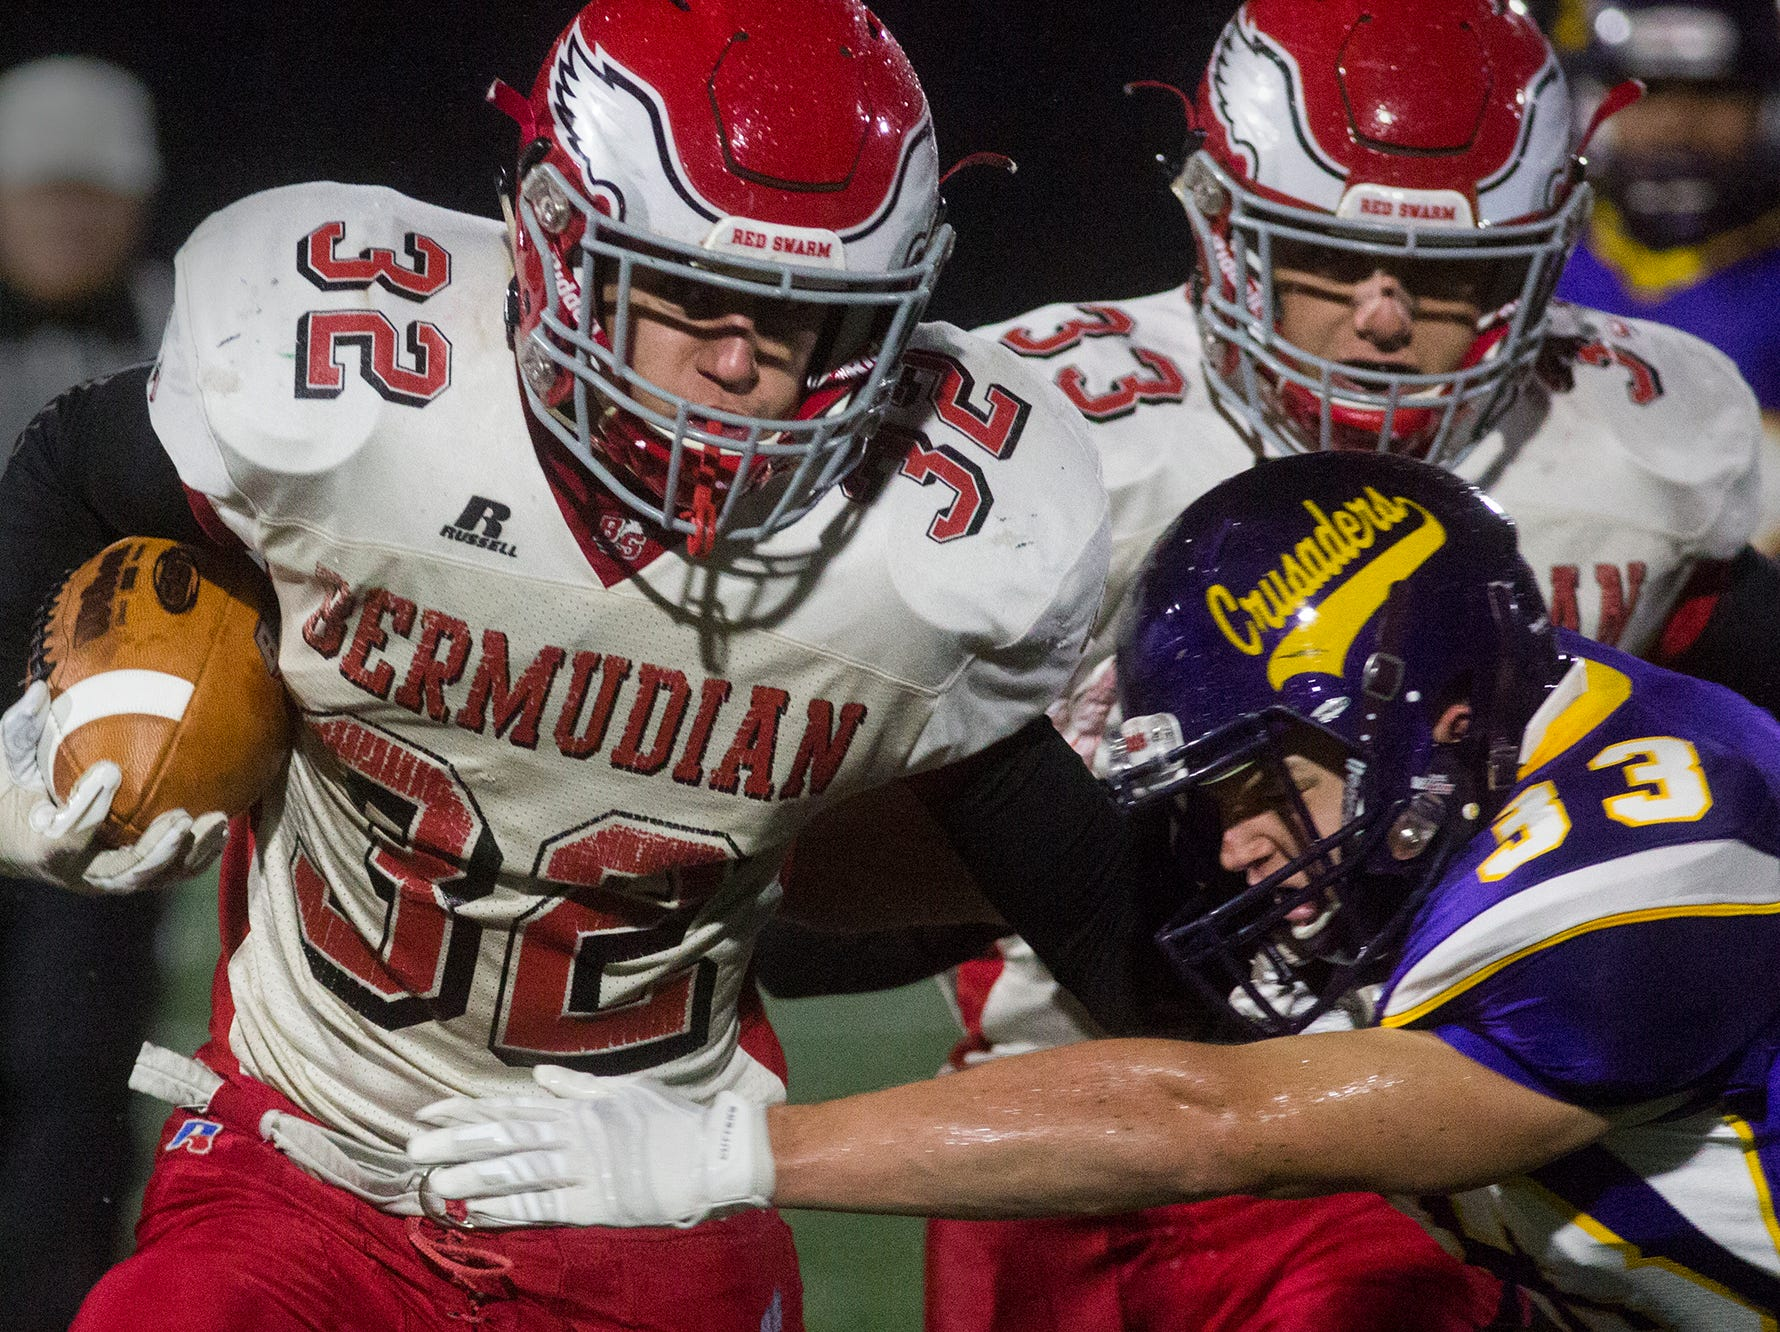 Bermudian Springs' Thomas Bross, left, runs with the ball. Bermudian Springs defeats Lancaster Catholic 20-10 in a District 3 Class 3A semifinal football game at Lancaster Catholic's Crusader Stadium, Friday, November 9, 2018.